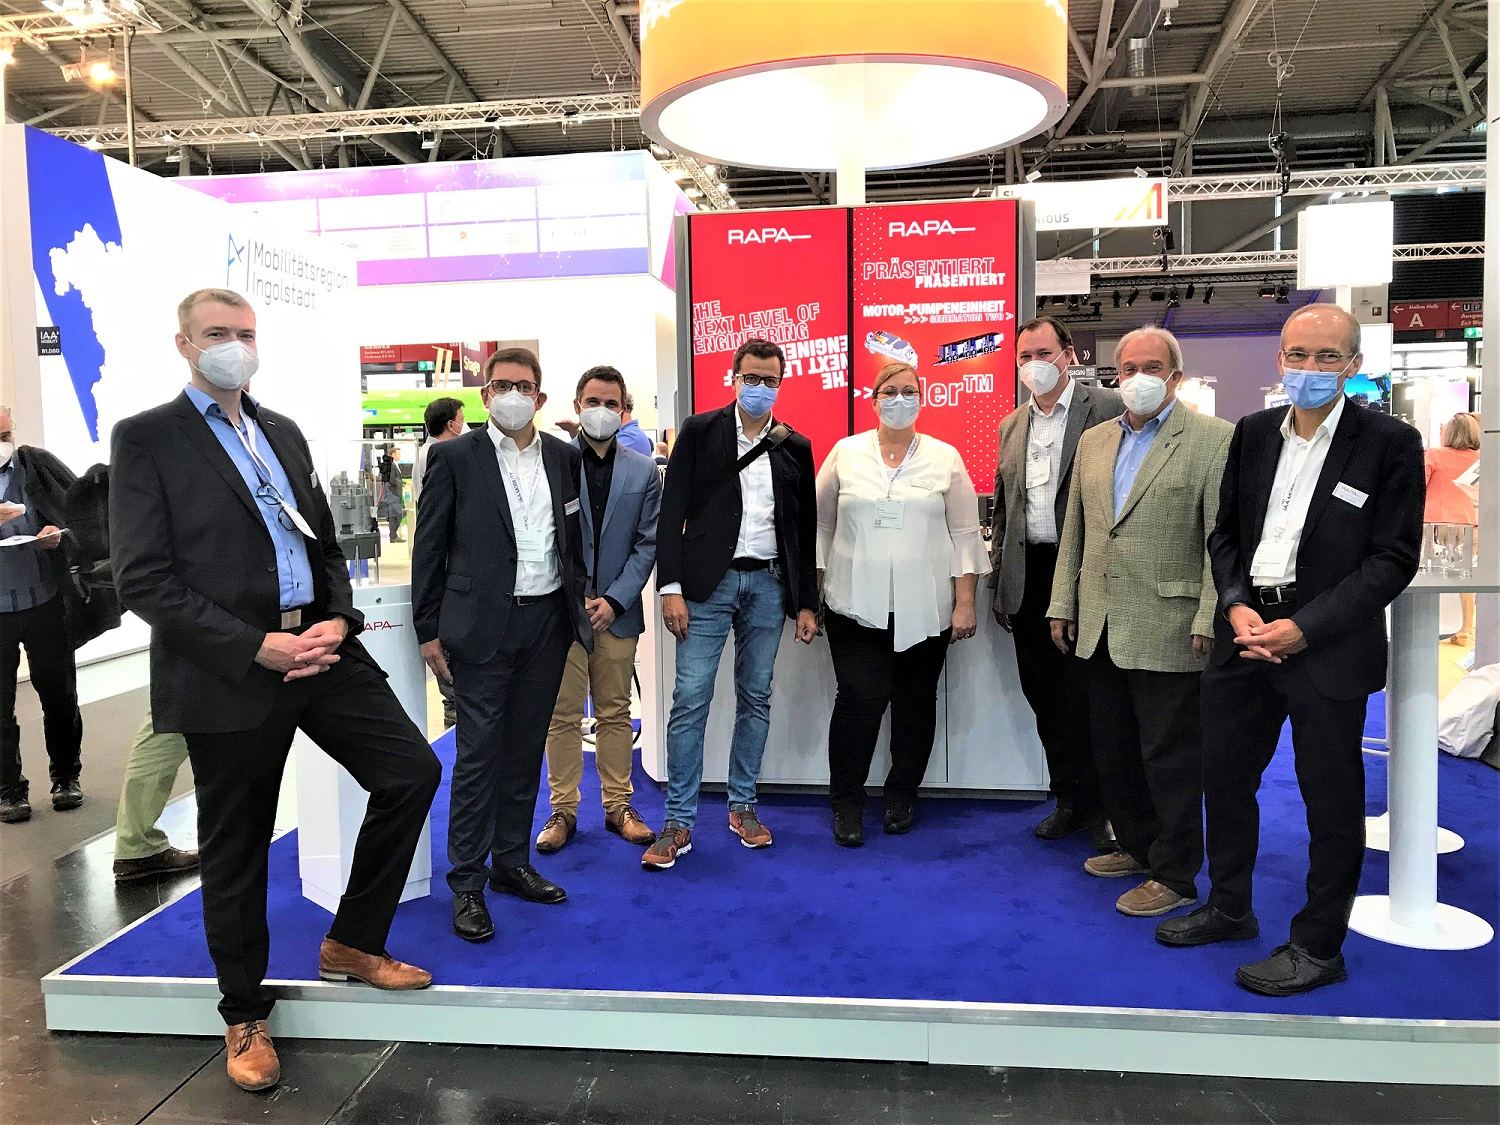 Review of IAA Mobility 2021: A great success for RAPA